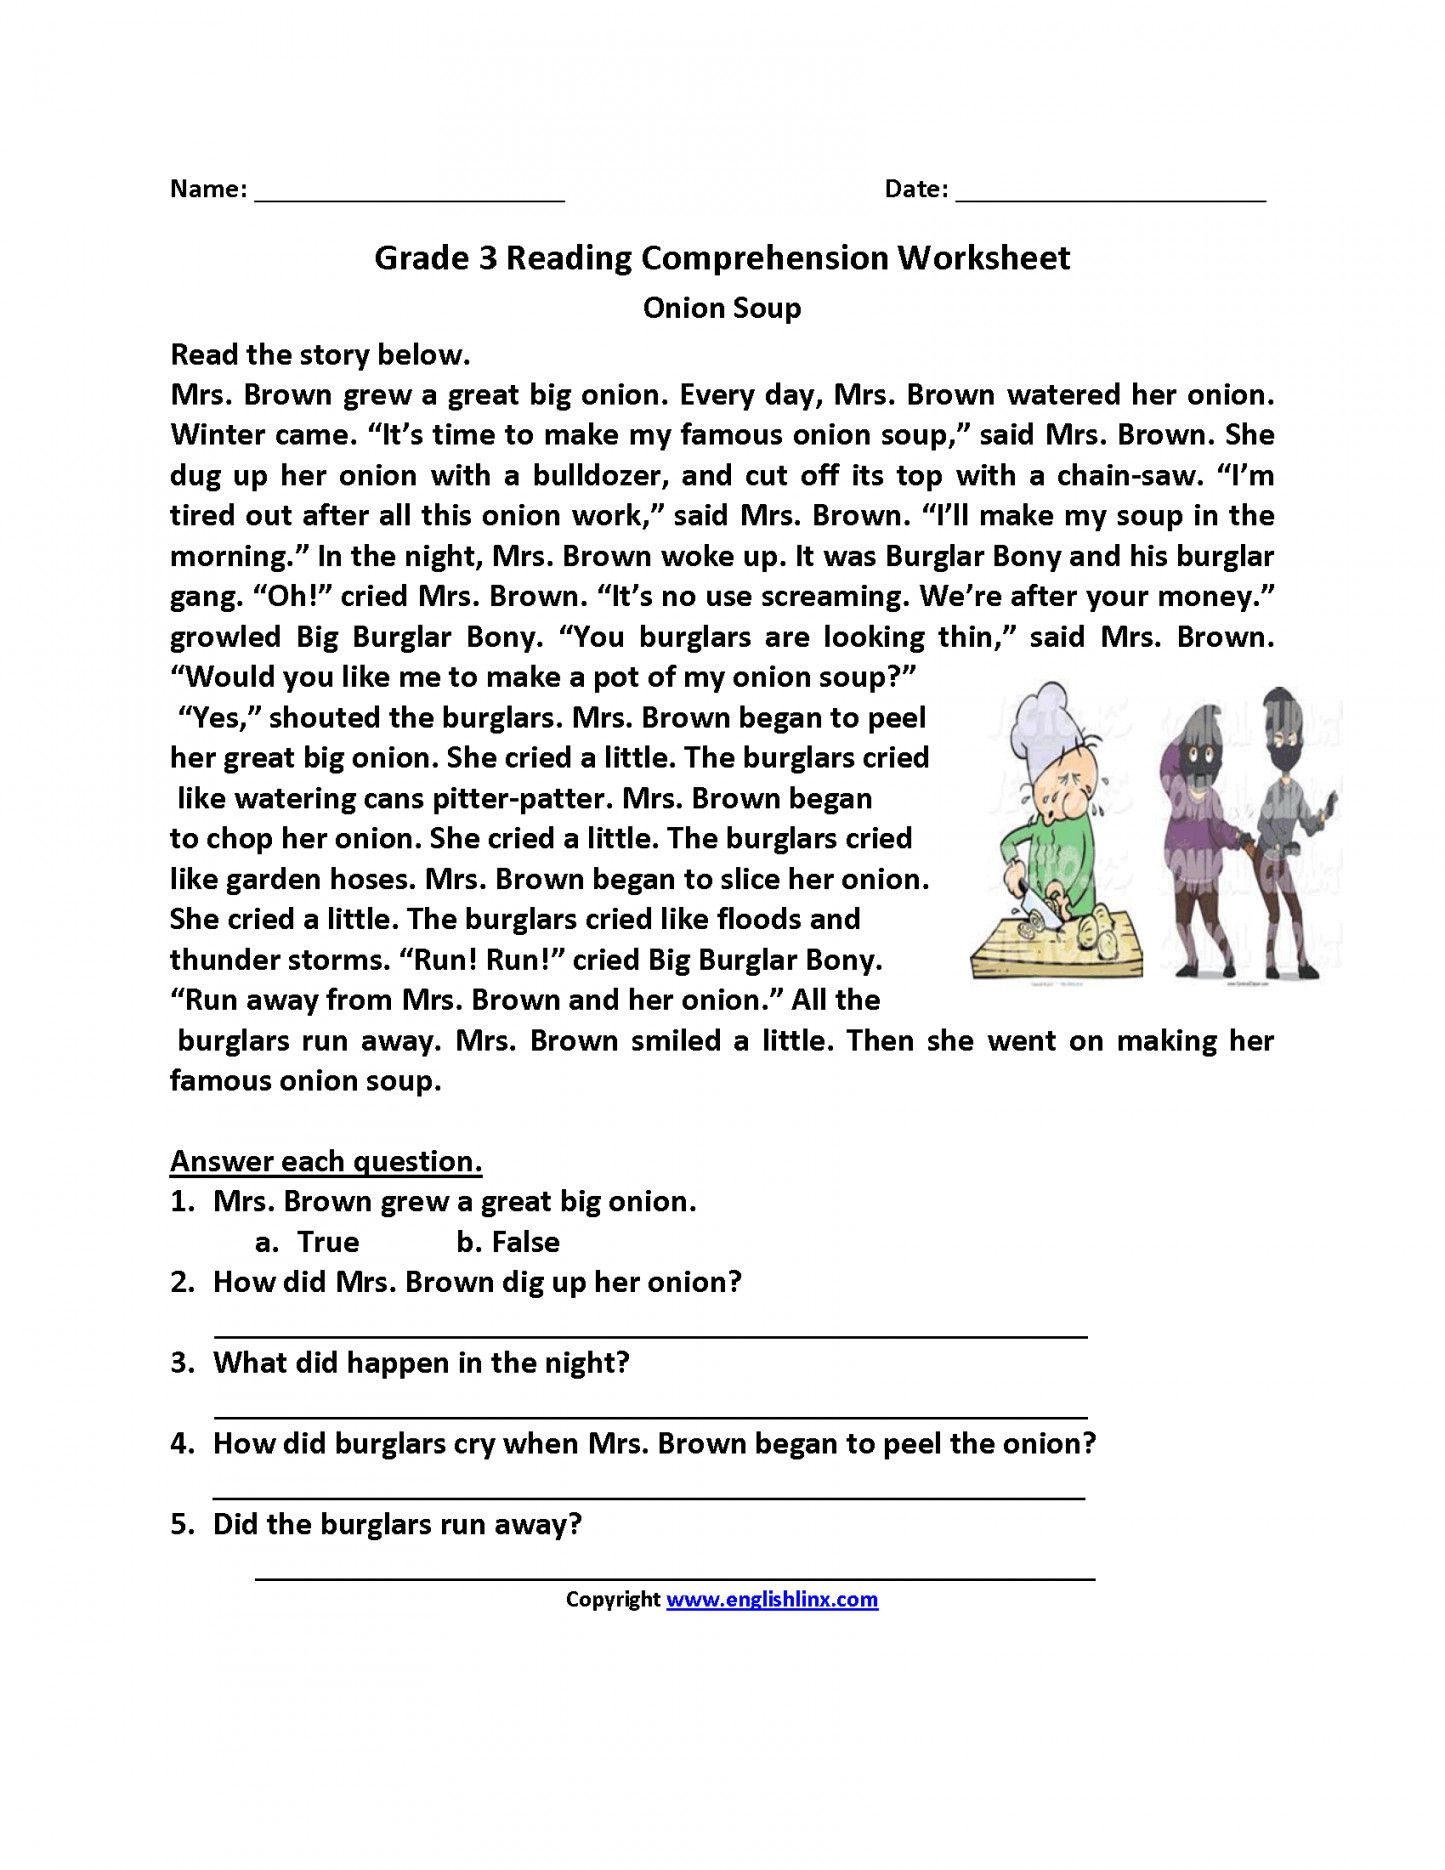 Free Printable 3Rd Grade Reading Worksheets | Lostranquillos - Third Grade Reading Worksheets Free Printable